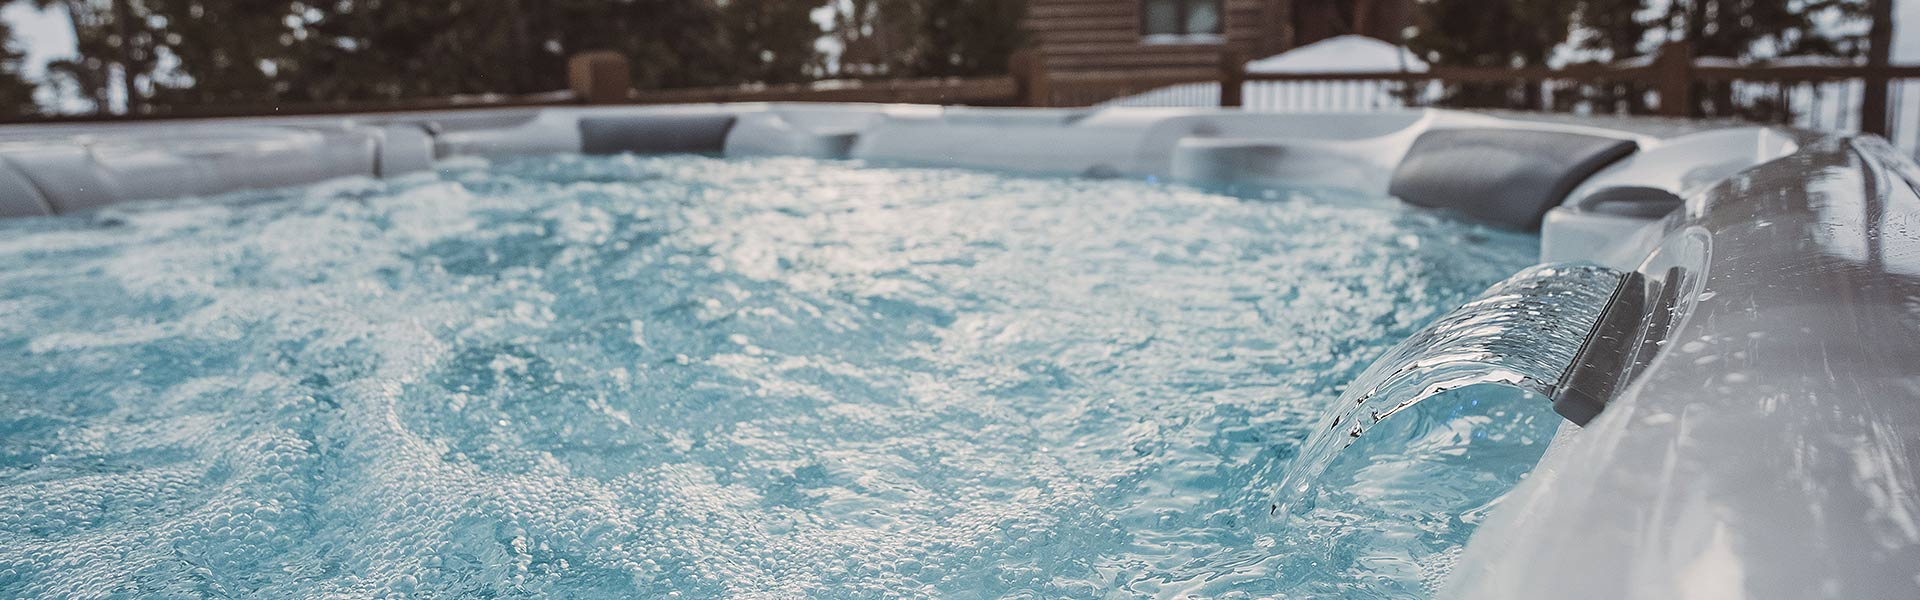 Hot Spring Hot Tubs Des Moines, Swim Spas Dealer Shares 3 Ways to Make a Winter Hot Tub Party Magical